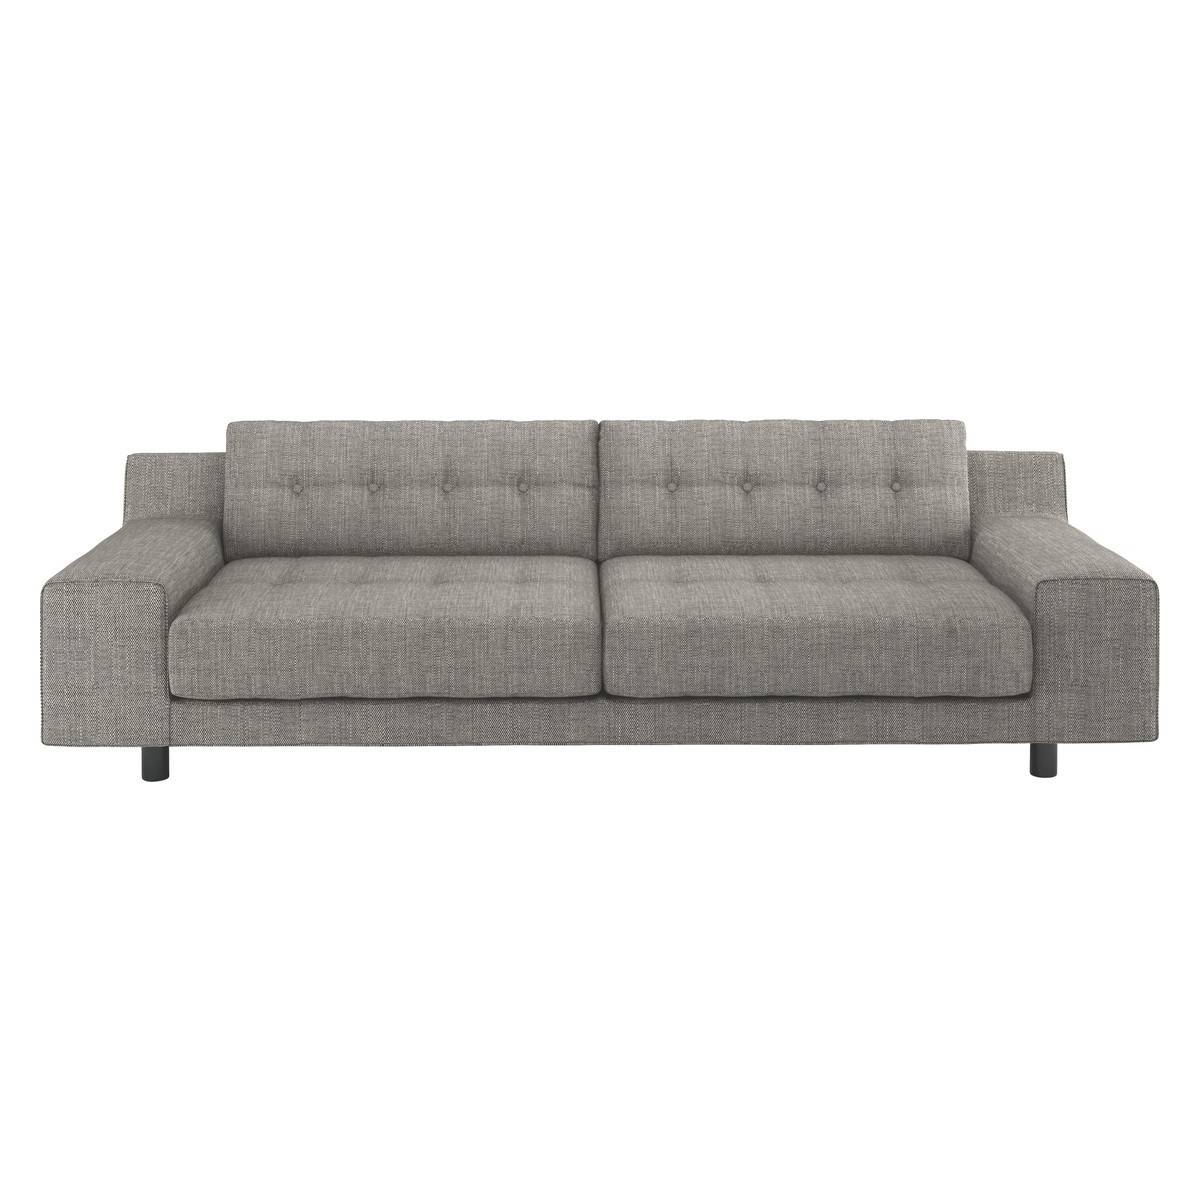 Hendricks Black And White Italian Woven Fabric 3 Seater Sofa | Buy with Black And White Sofas (Image 15 of 30)